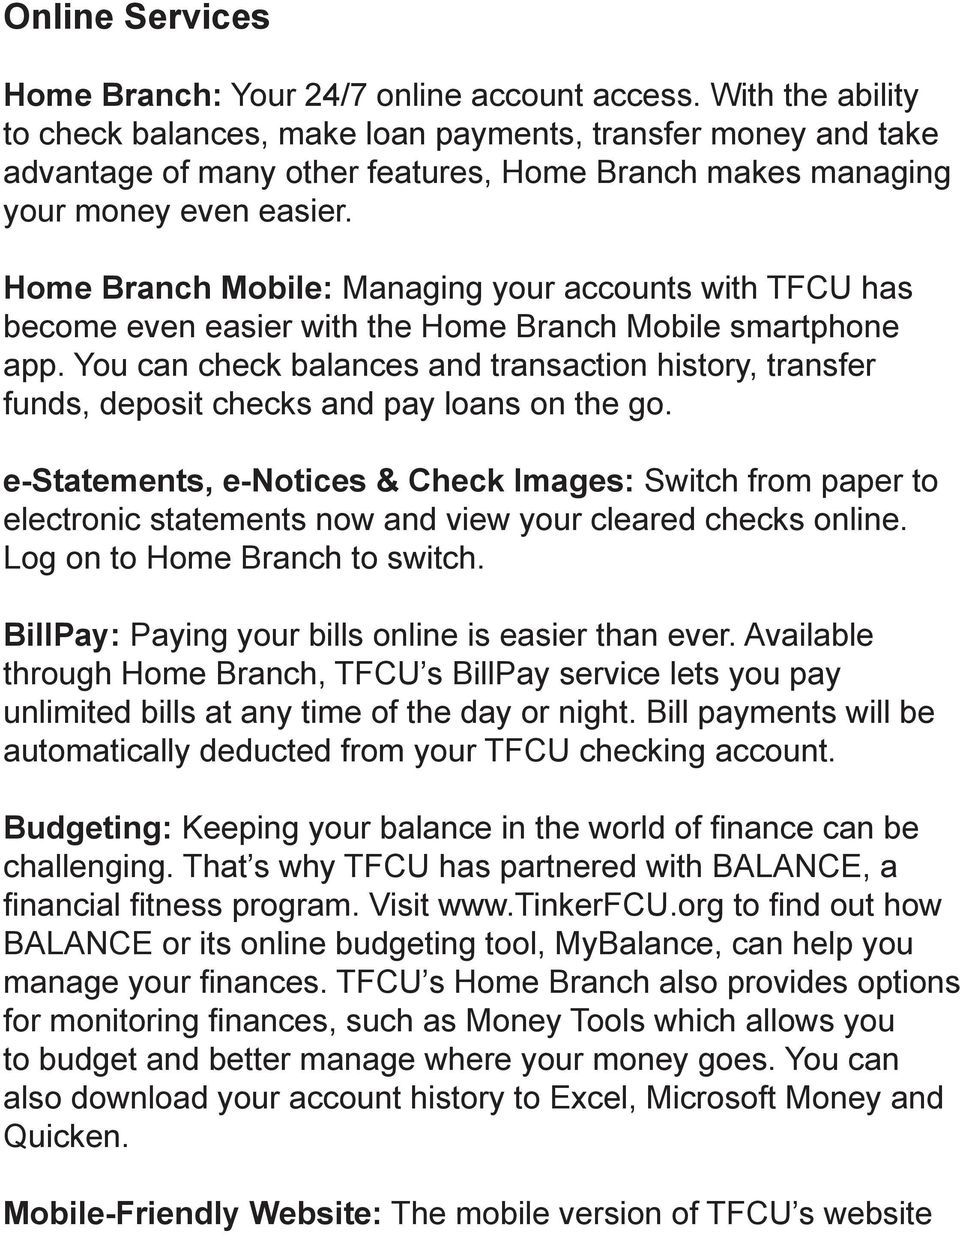 Home Branch Mobile: Managing your accounts with TFCU has become even easier with the Home Branch Mobile smartphone app.